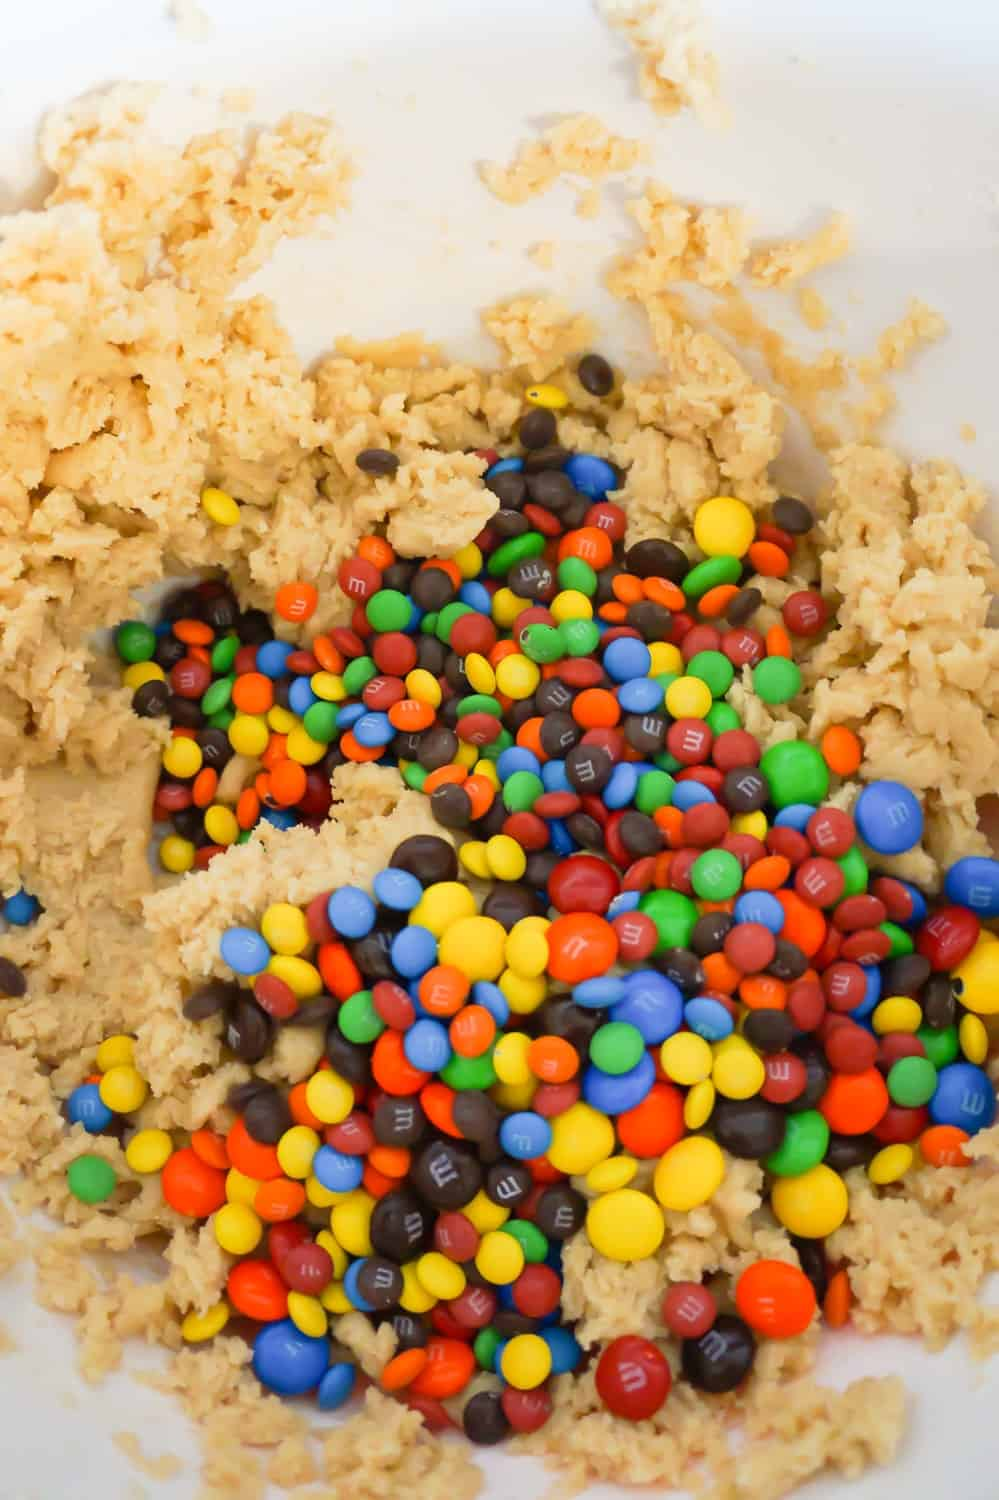 M&Ms and mini M&Ms on top of cookie dough in a mixing bowl